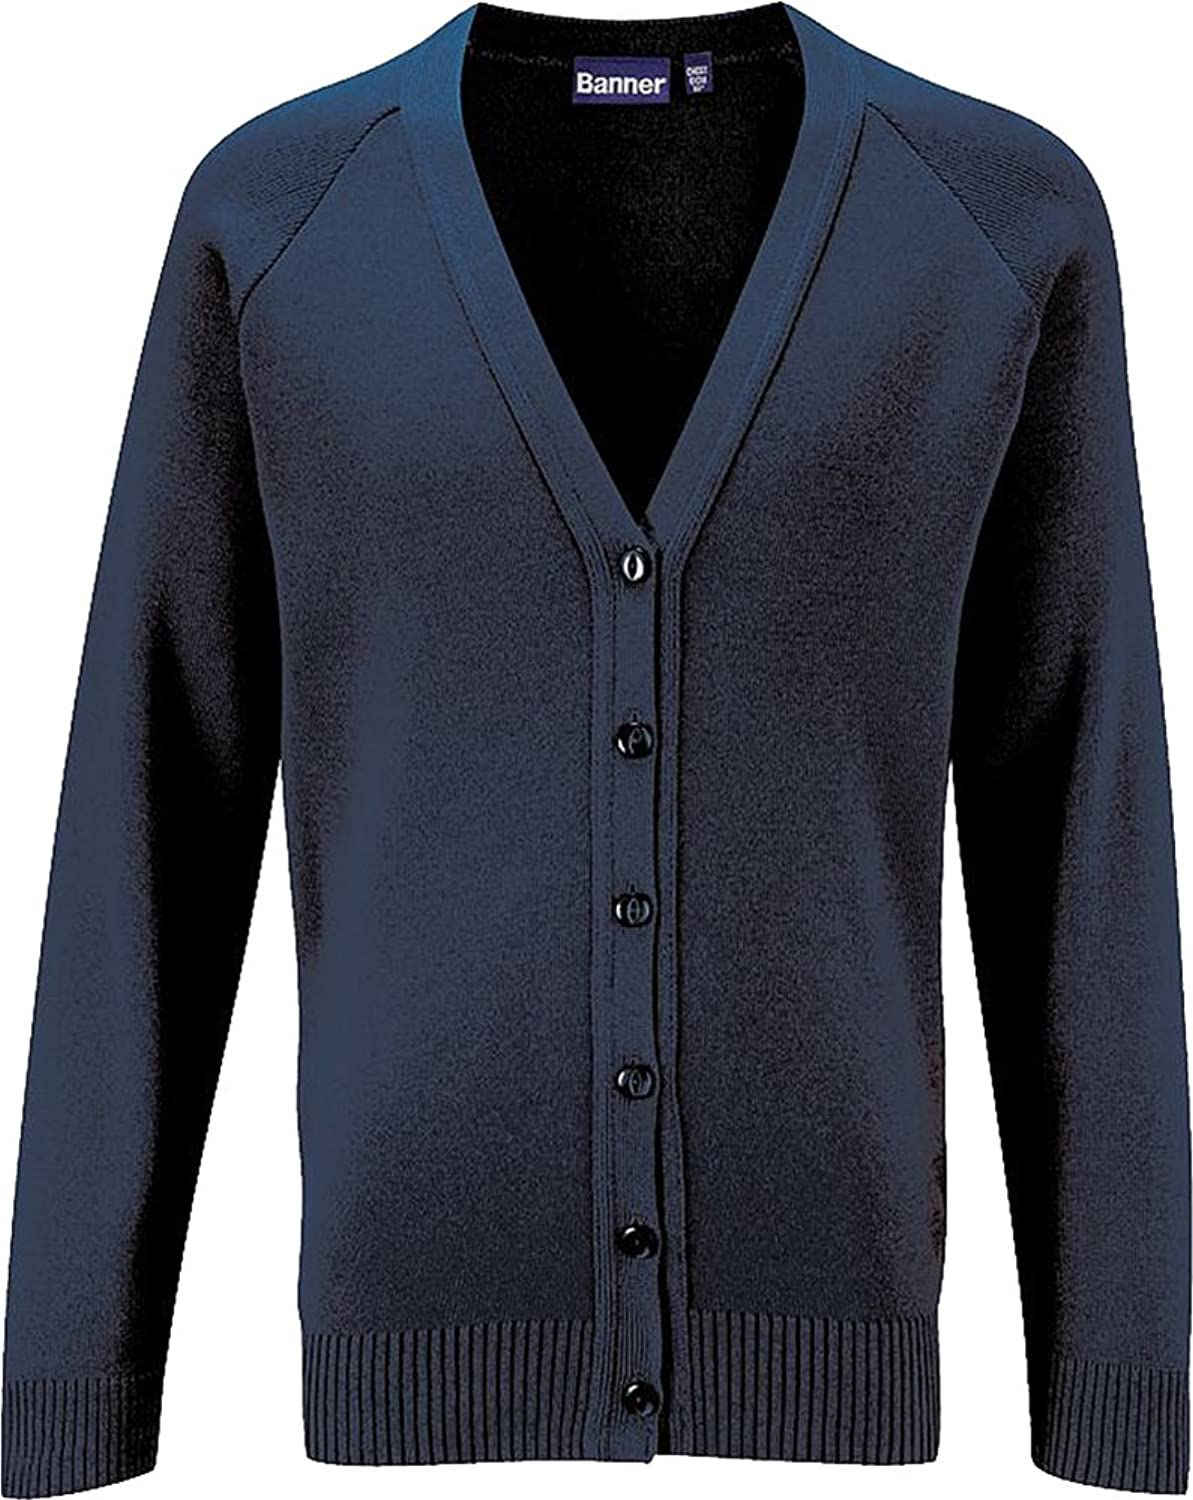 Blue Max Adults Winterwear V Neck Style Long Sleeve Buttoned Cardigan Sweater